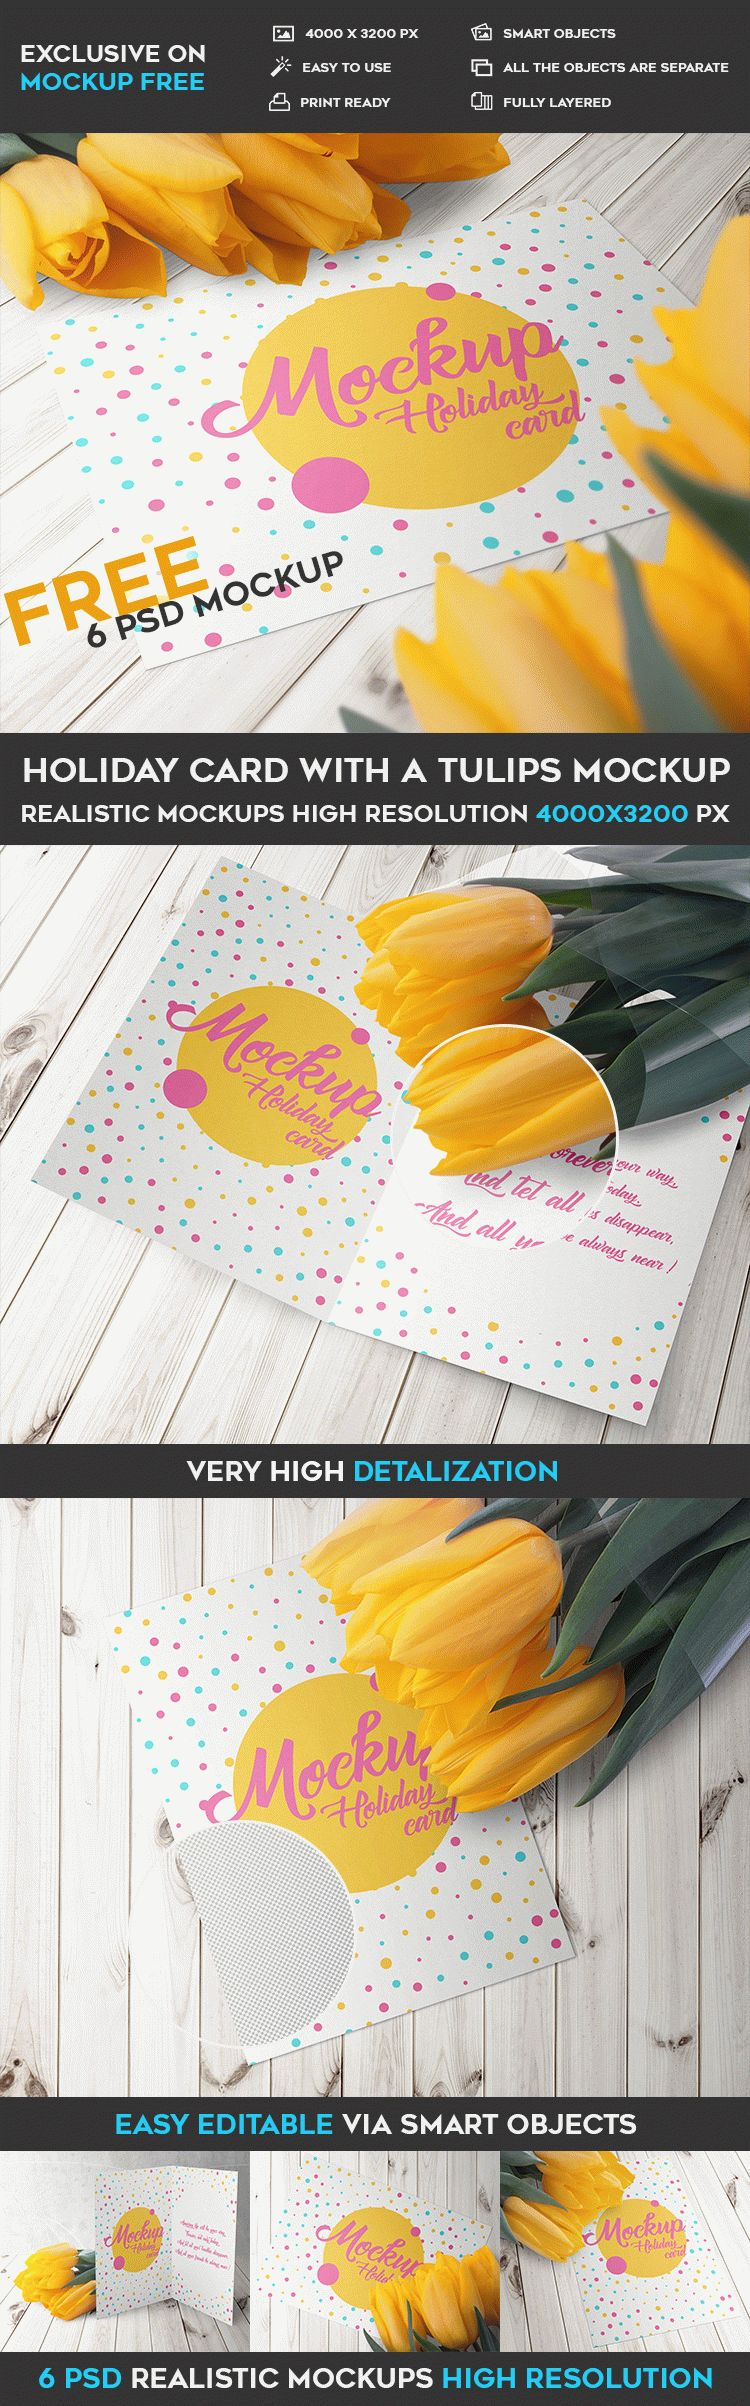 Holiday Card With A Tulips - 6 Free PSD Mockups